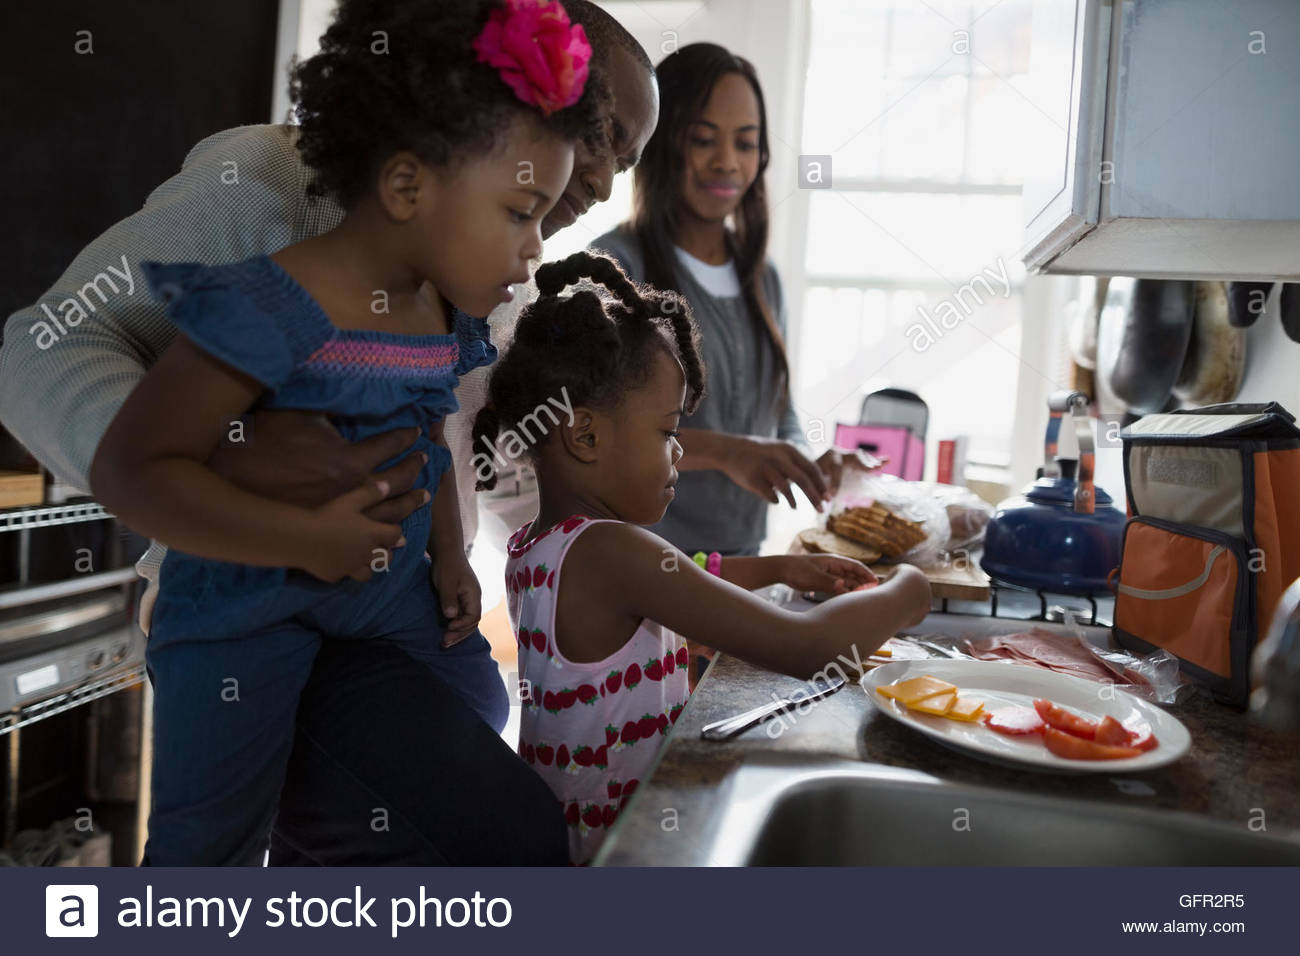 Young family making school lunches in kitchen - Stock Image